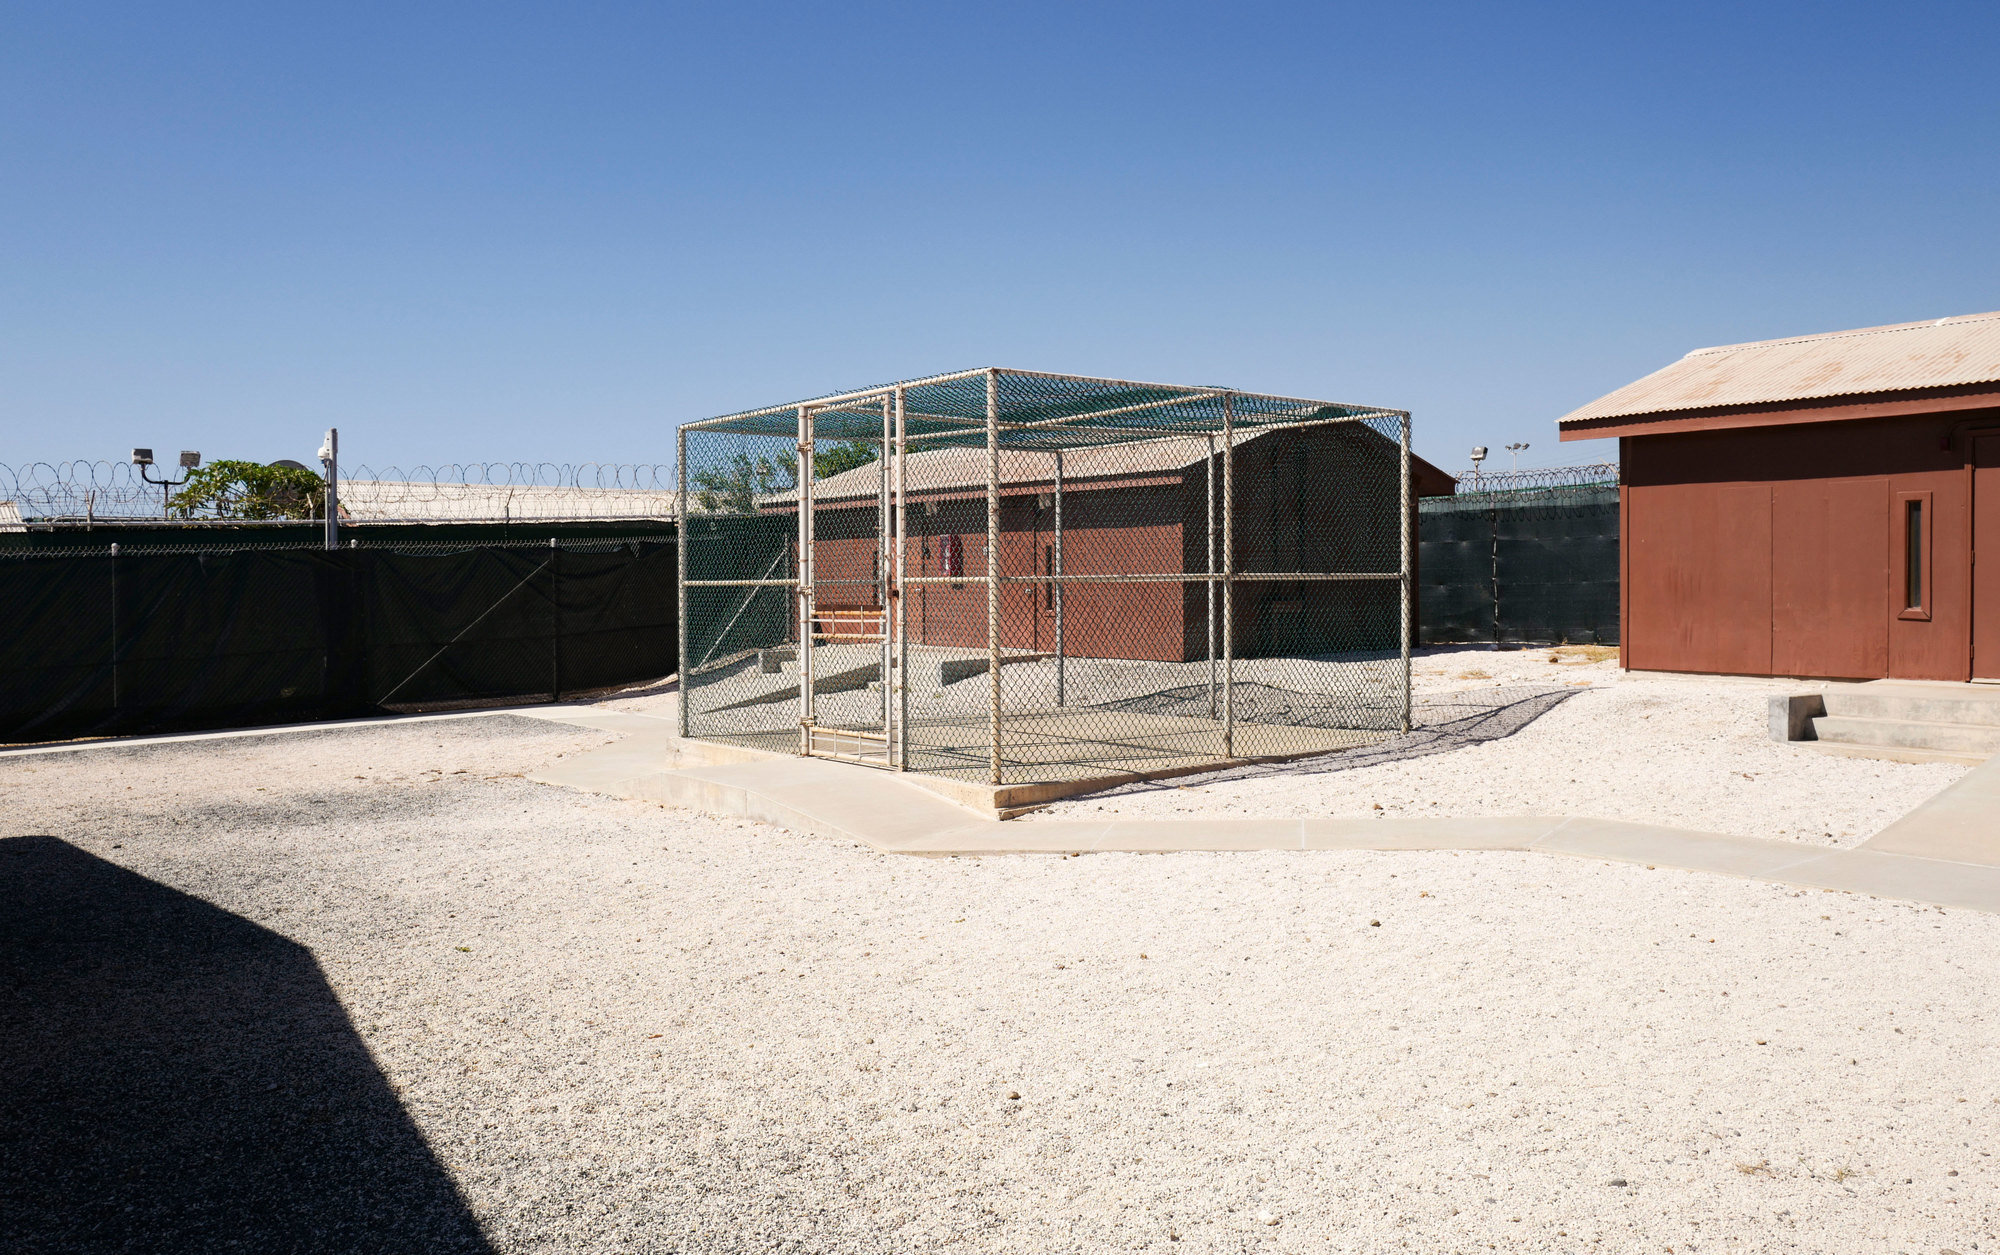 A recreation cage in the prison camp at Guantánamo Bay.